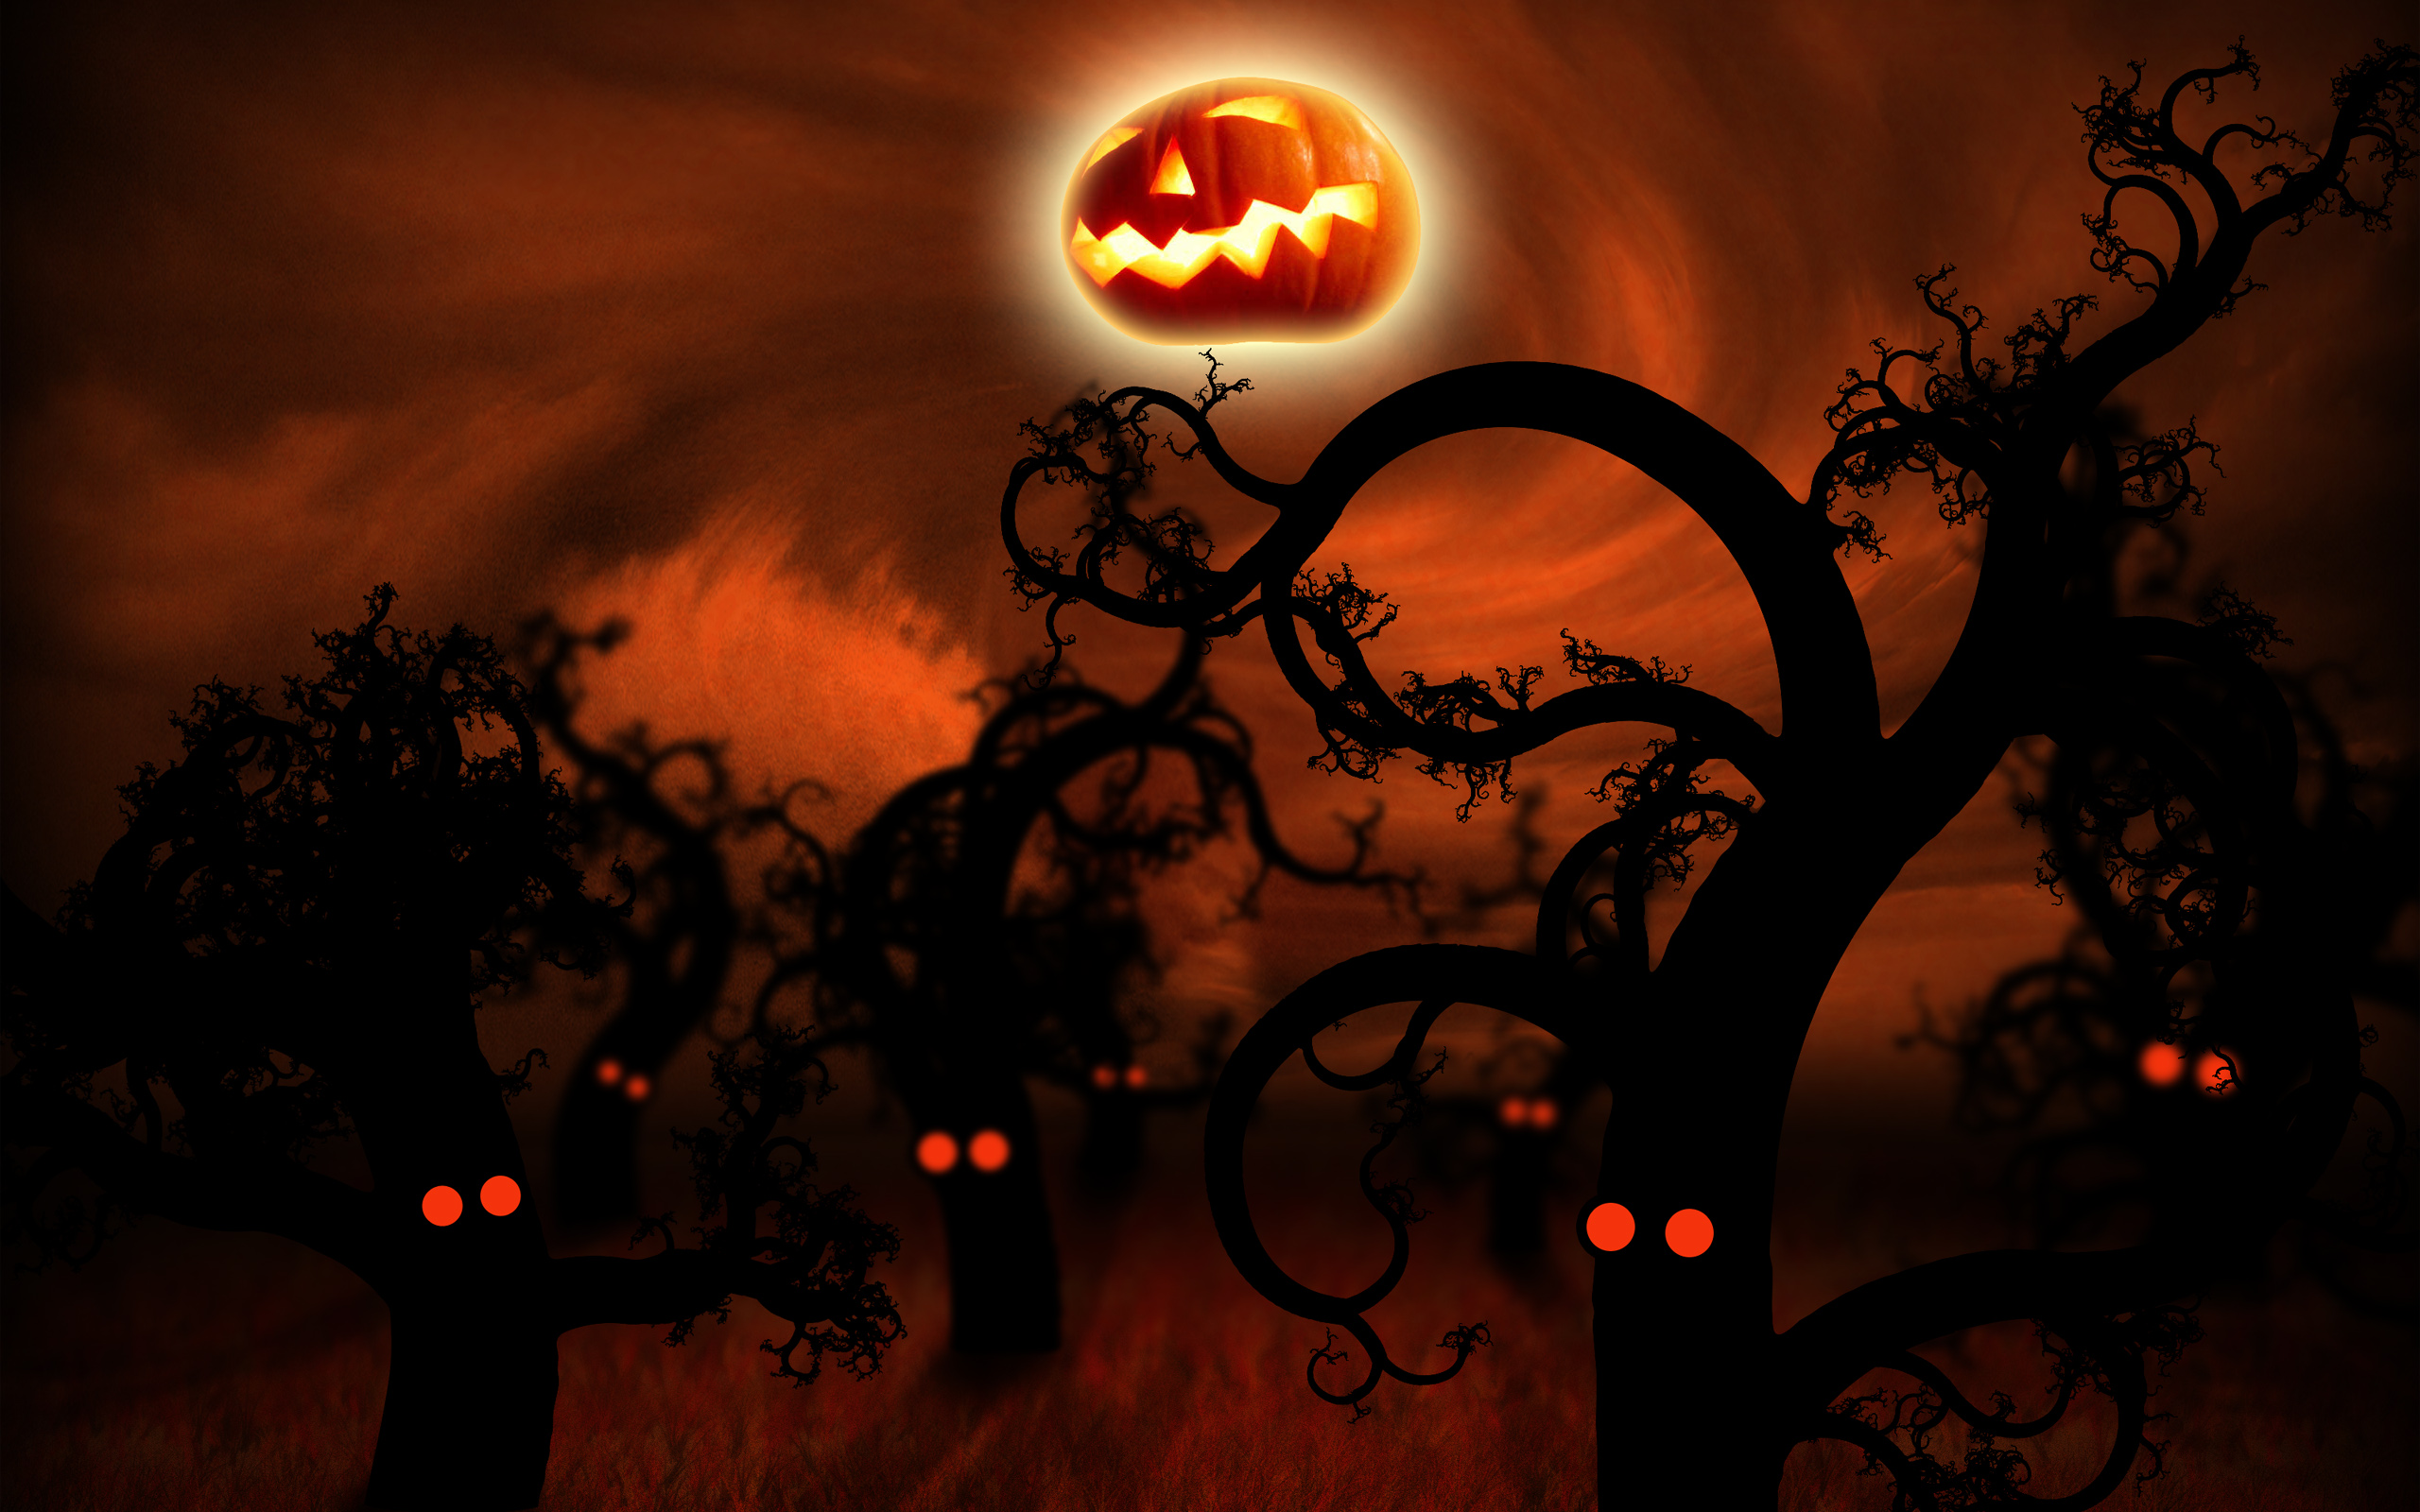 halloween-wallpaper-3804-4023-hd-wallpapers